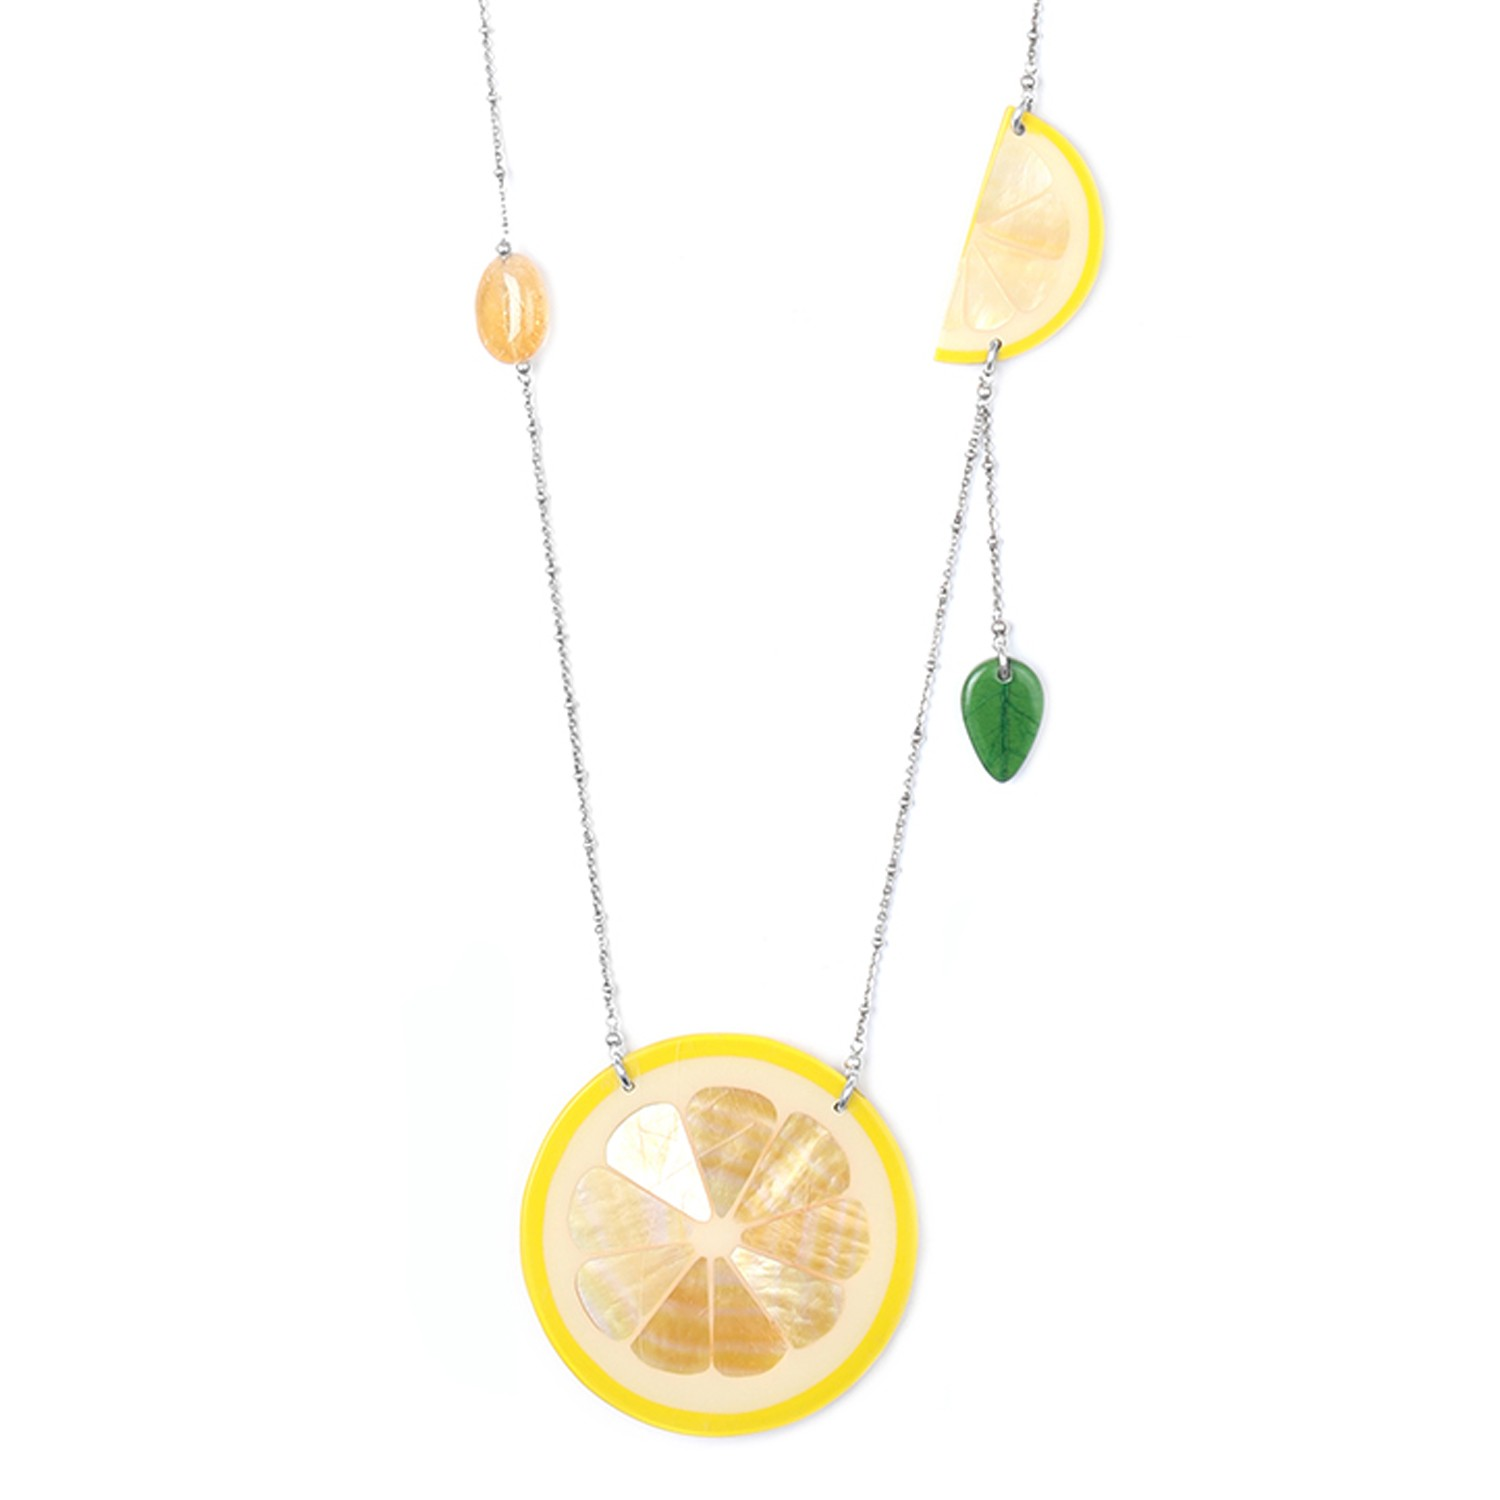 CITRUS collier long